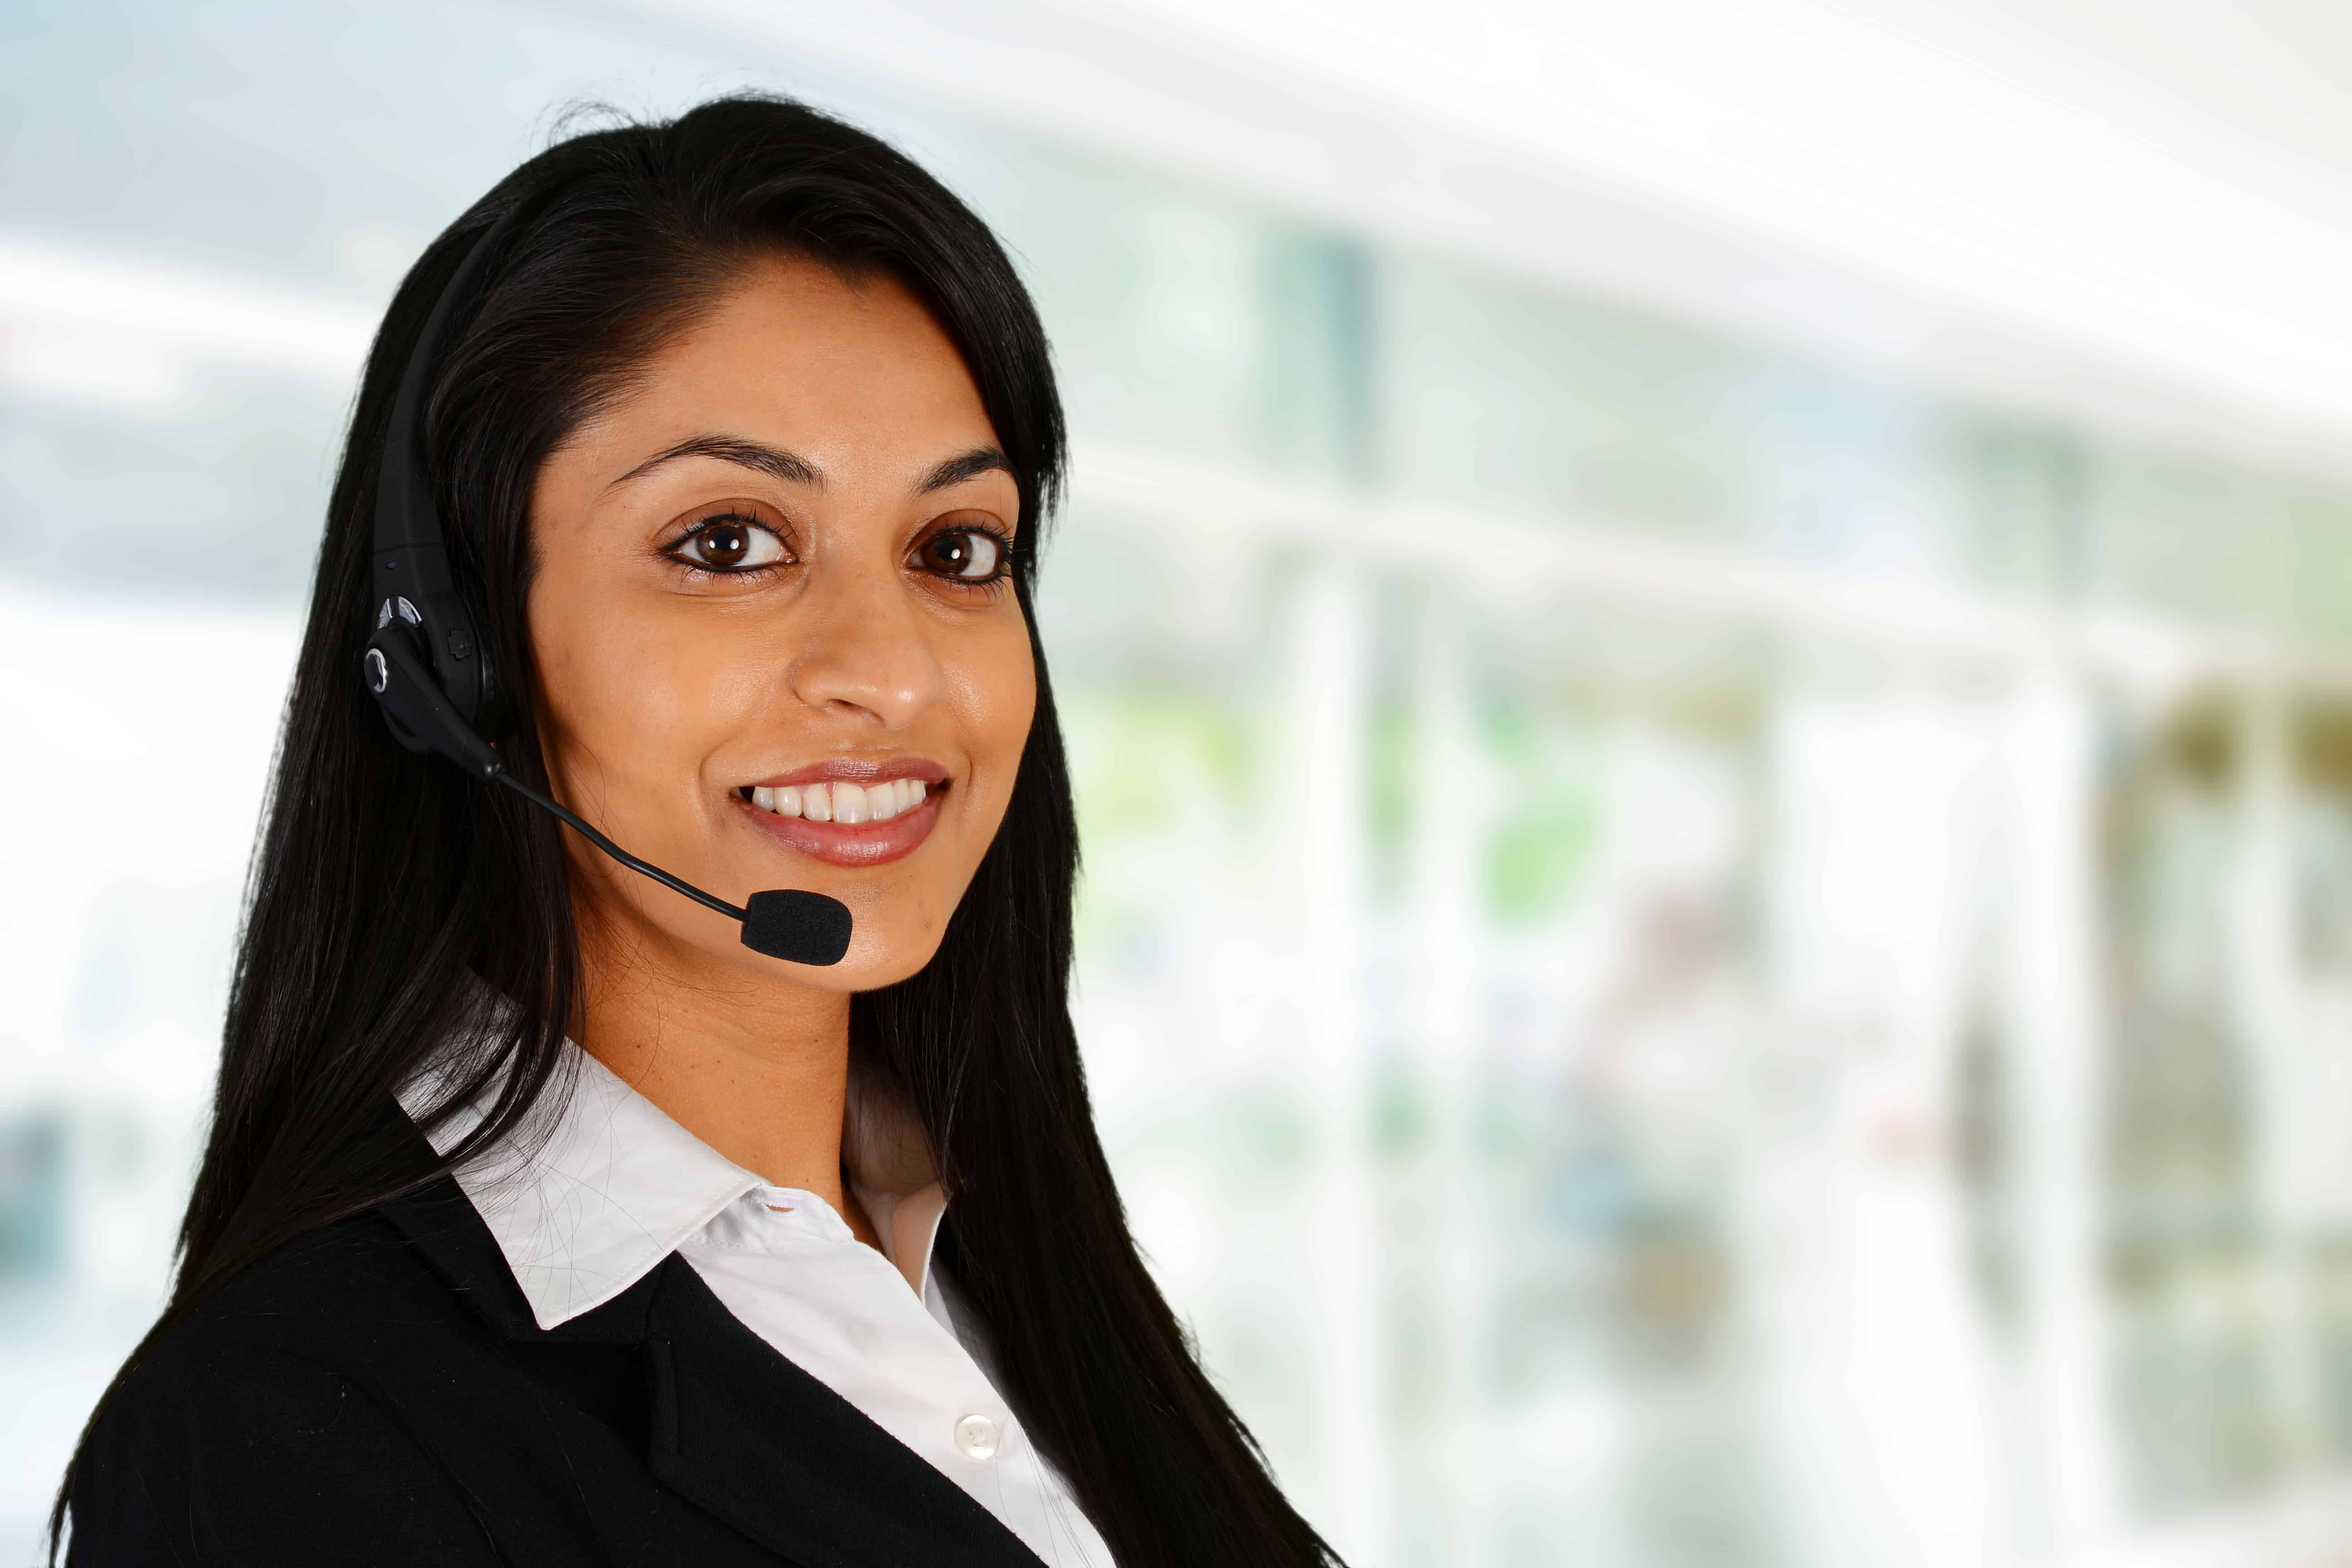 Woman with headset conducting online information session